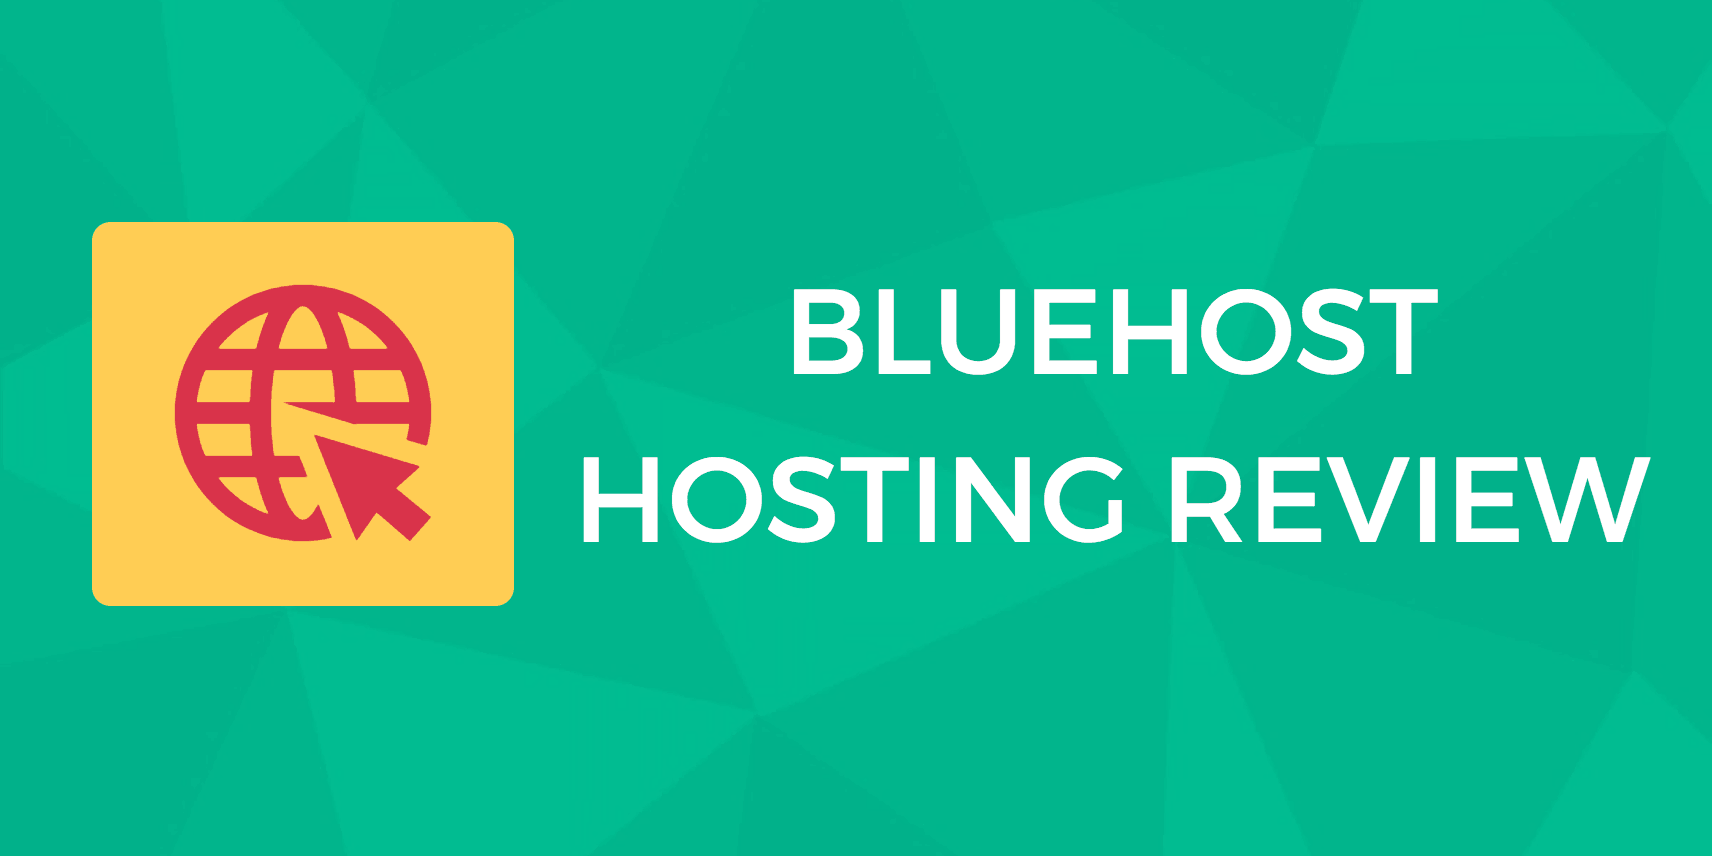 BlueHost Review: They're A Popular Hosting Provider, But Does That